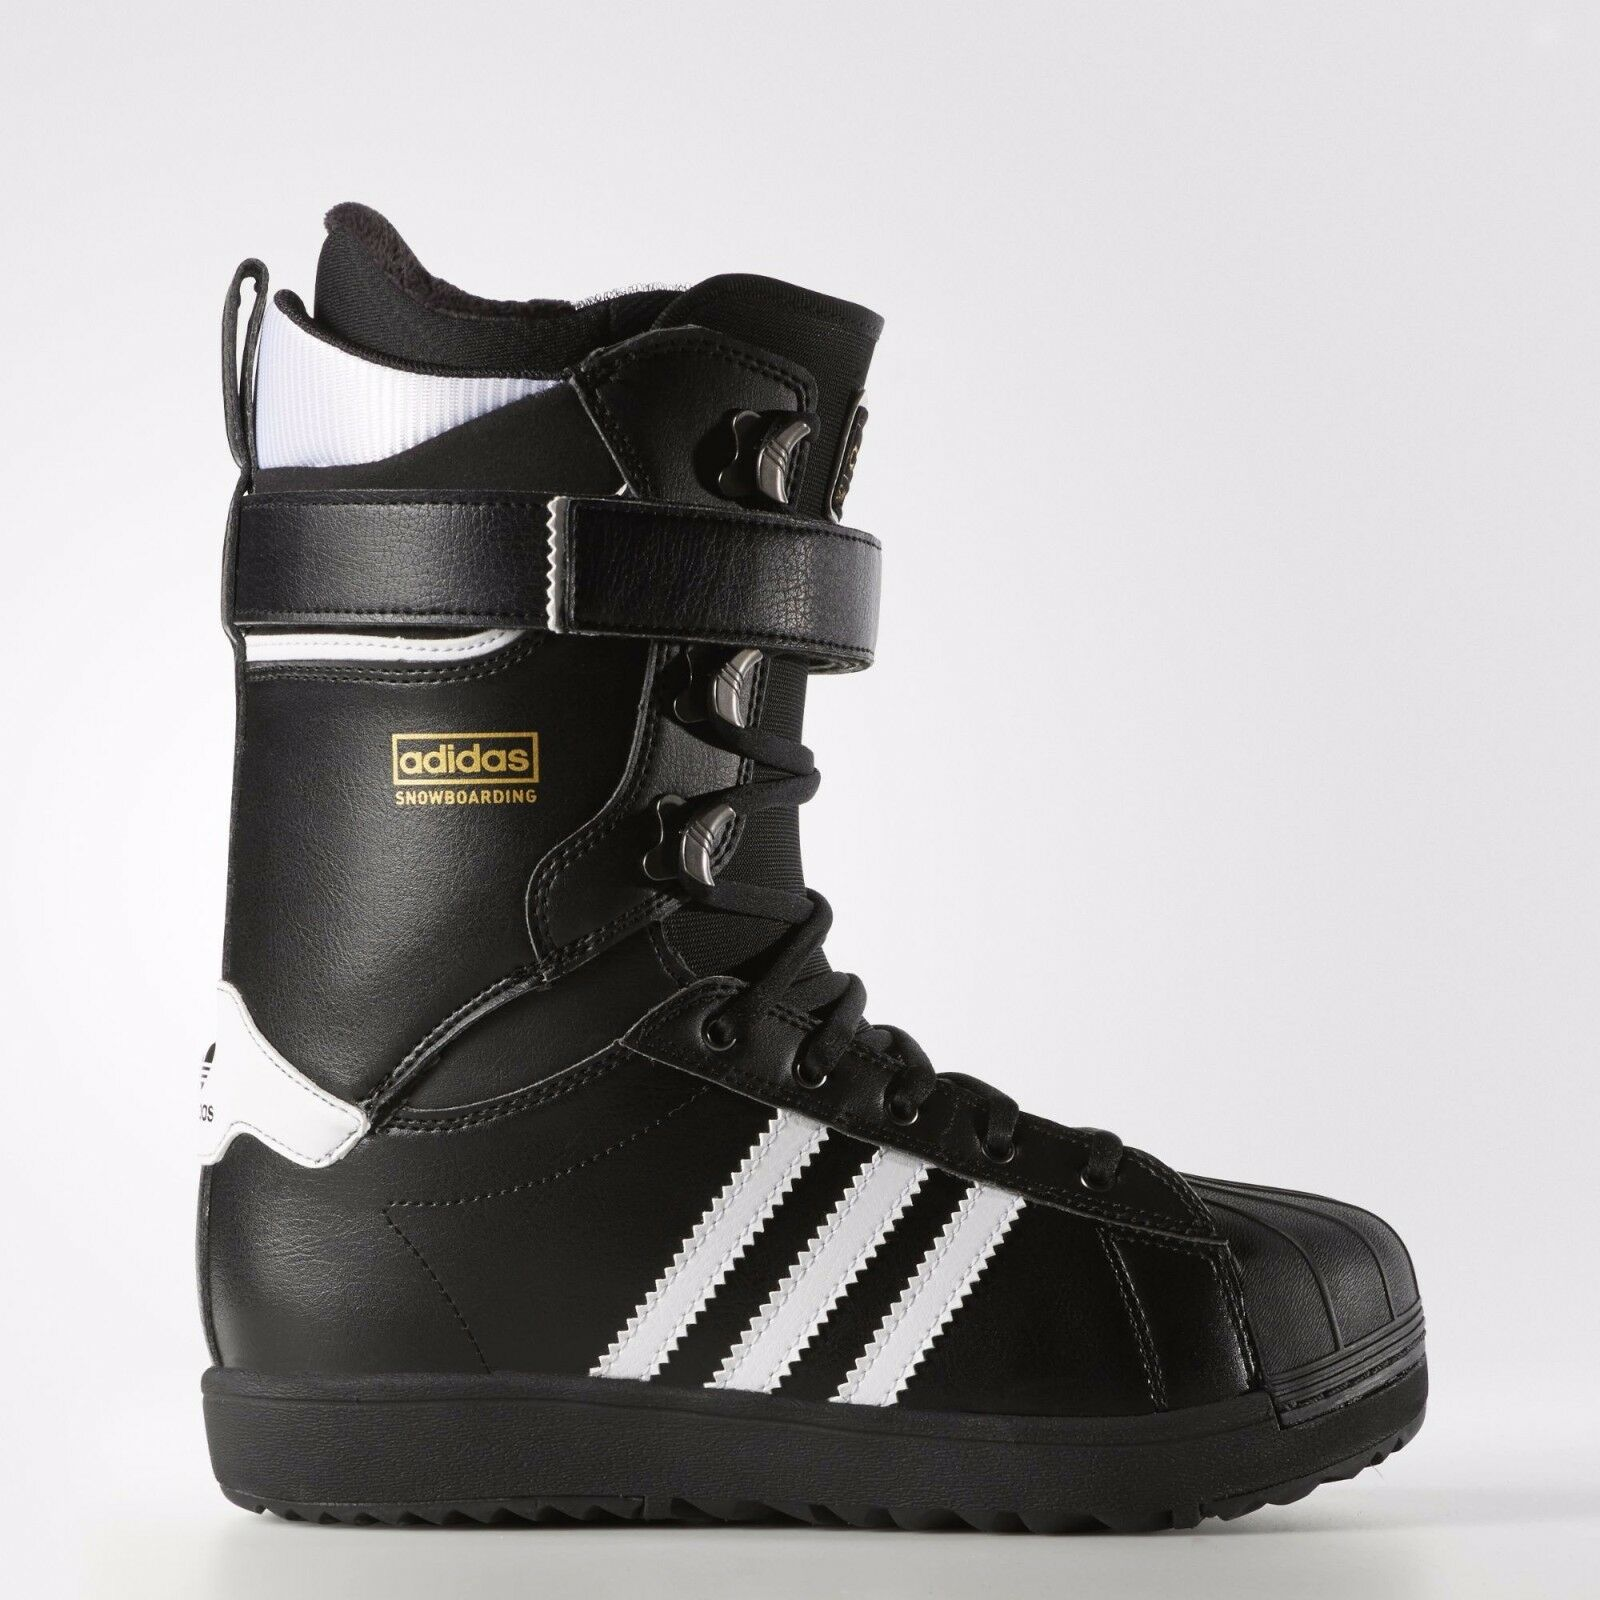 Adidas Originals Superstar Snowboarding Boots S85651 RARE Limited Edition